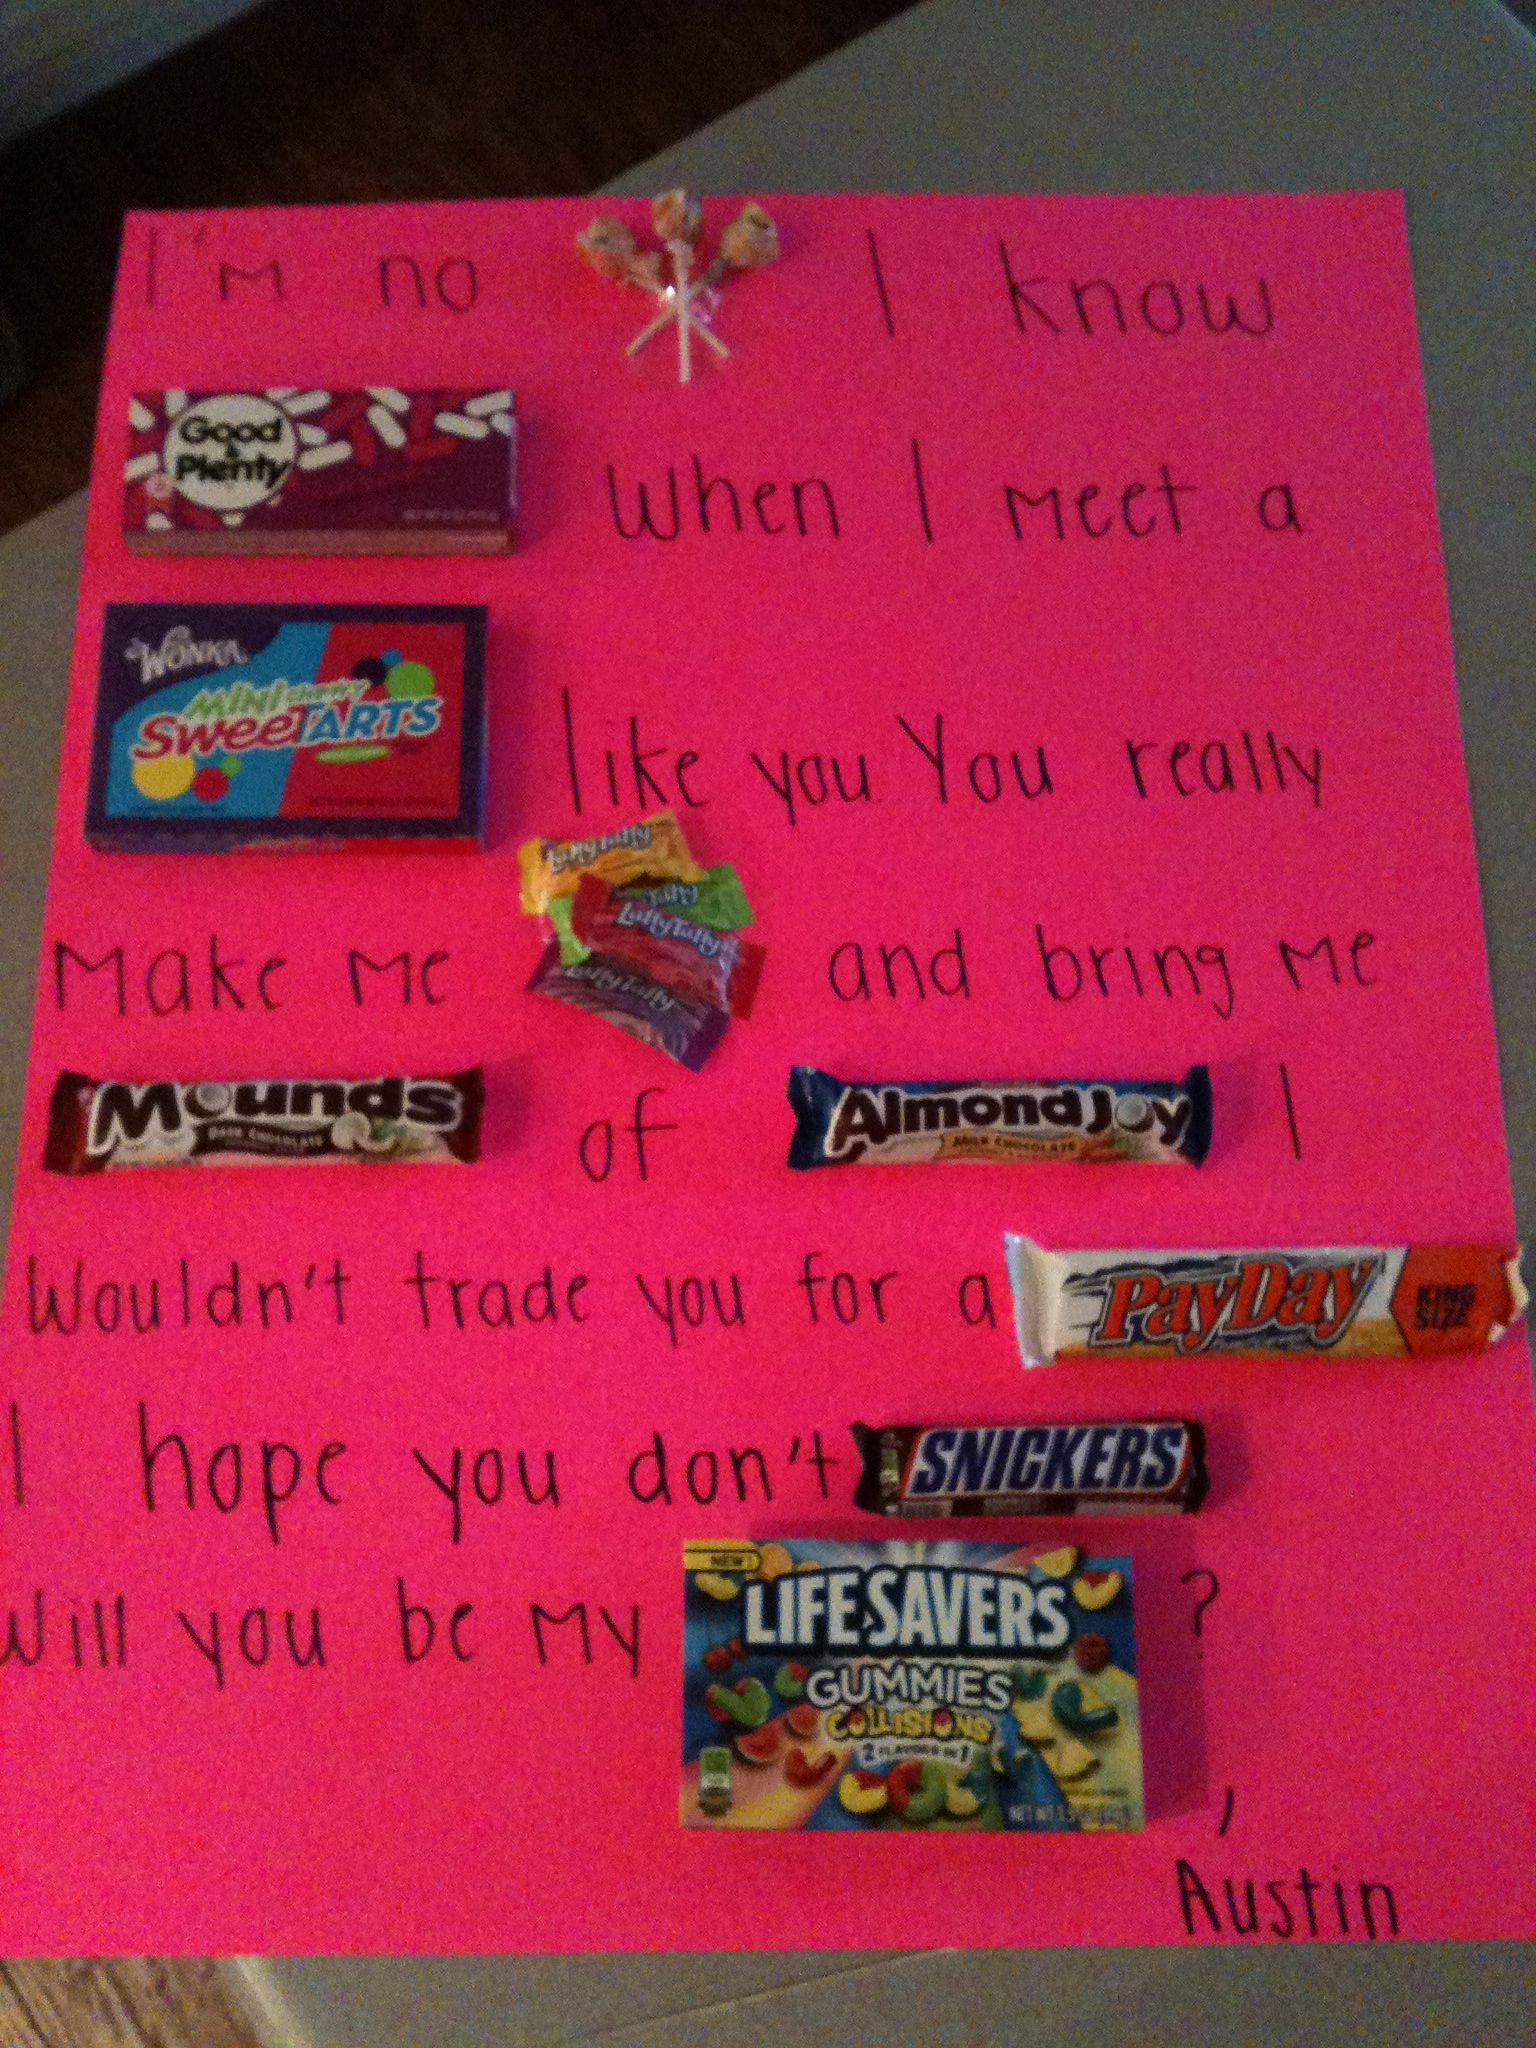 most creative ways to ask a girl out